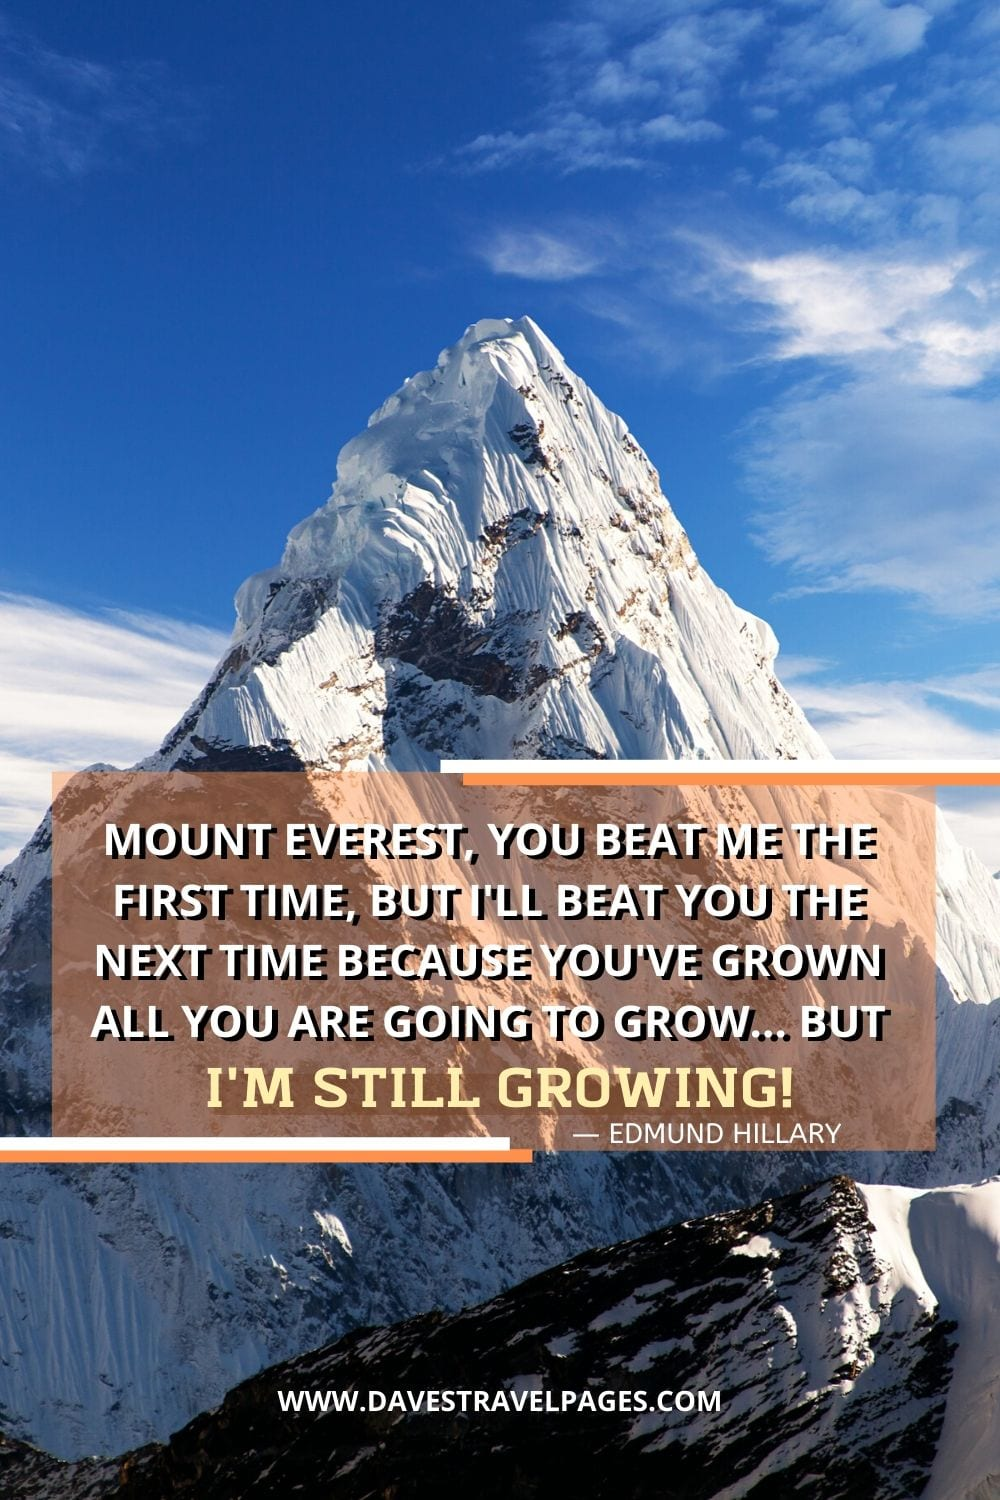 "Quotes about never giving up: ""Mount Everest, you beat me the first time, but I'll beat you the next time because you've grown all you are going to grow... but I'm still growing!"""